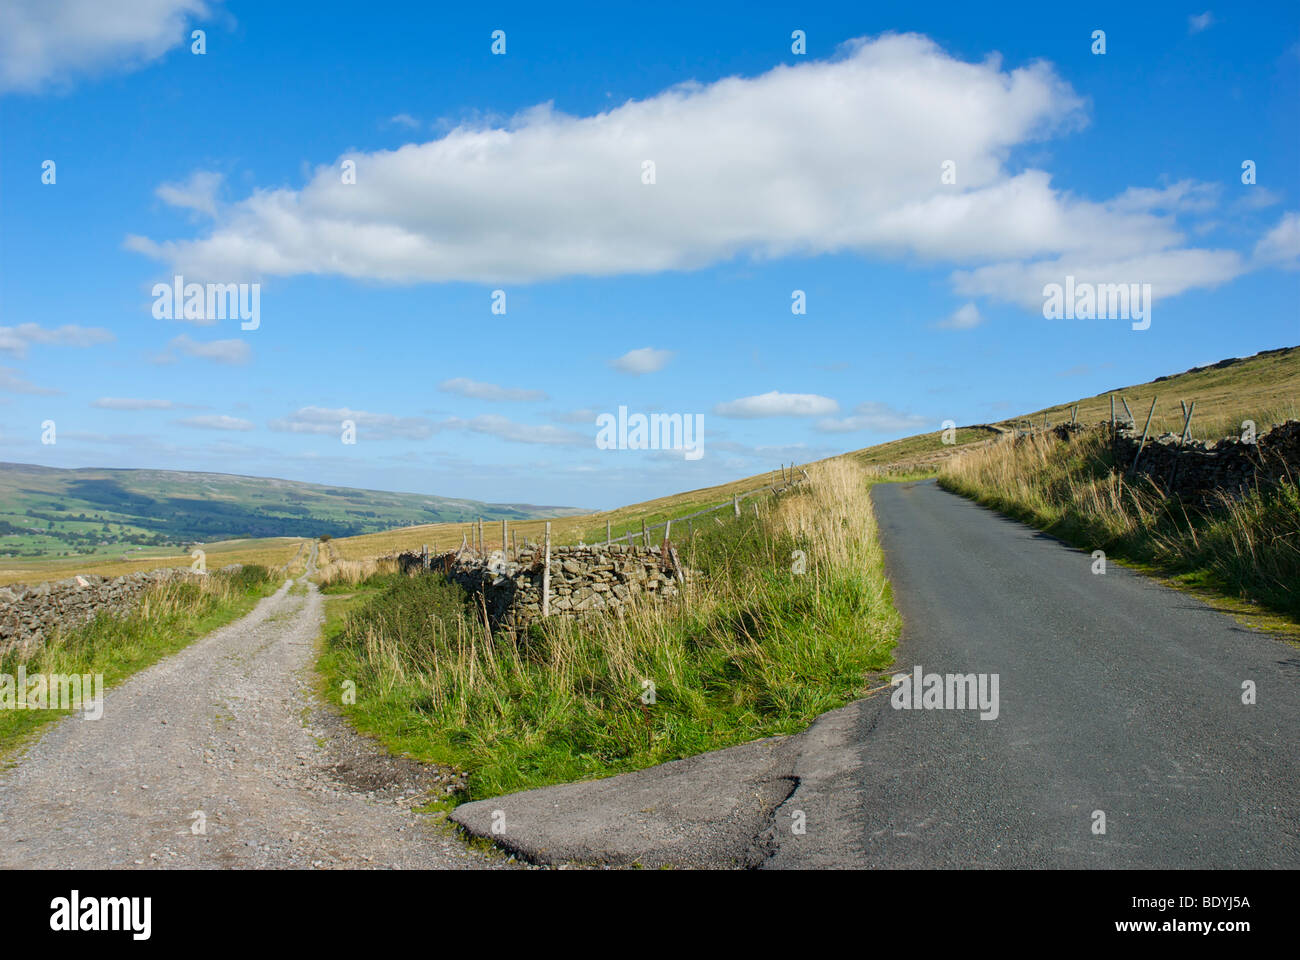 Cam High Road (Roman) on left, modern road on right. Wensleydale, Yorkshire Dales National Park, England UK - Stock Image